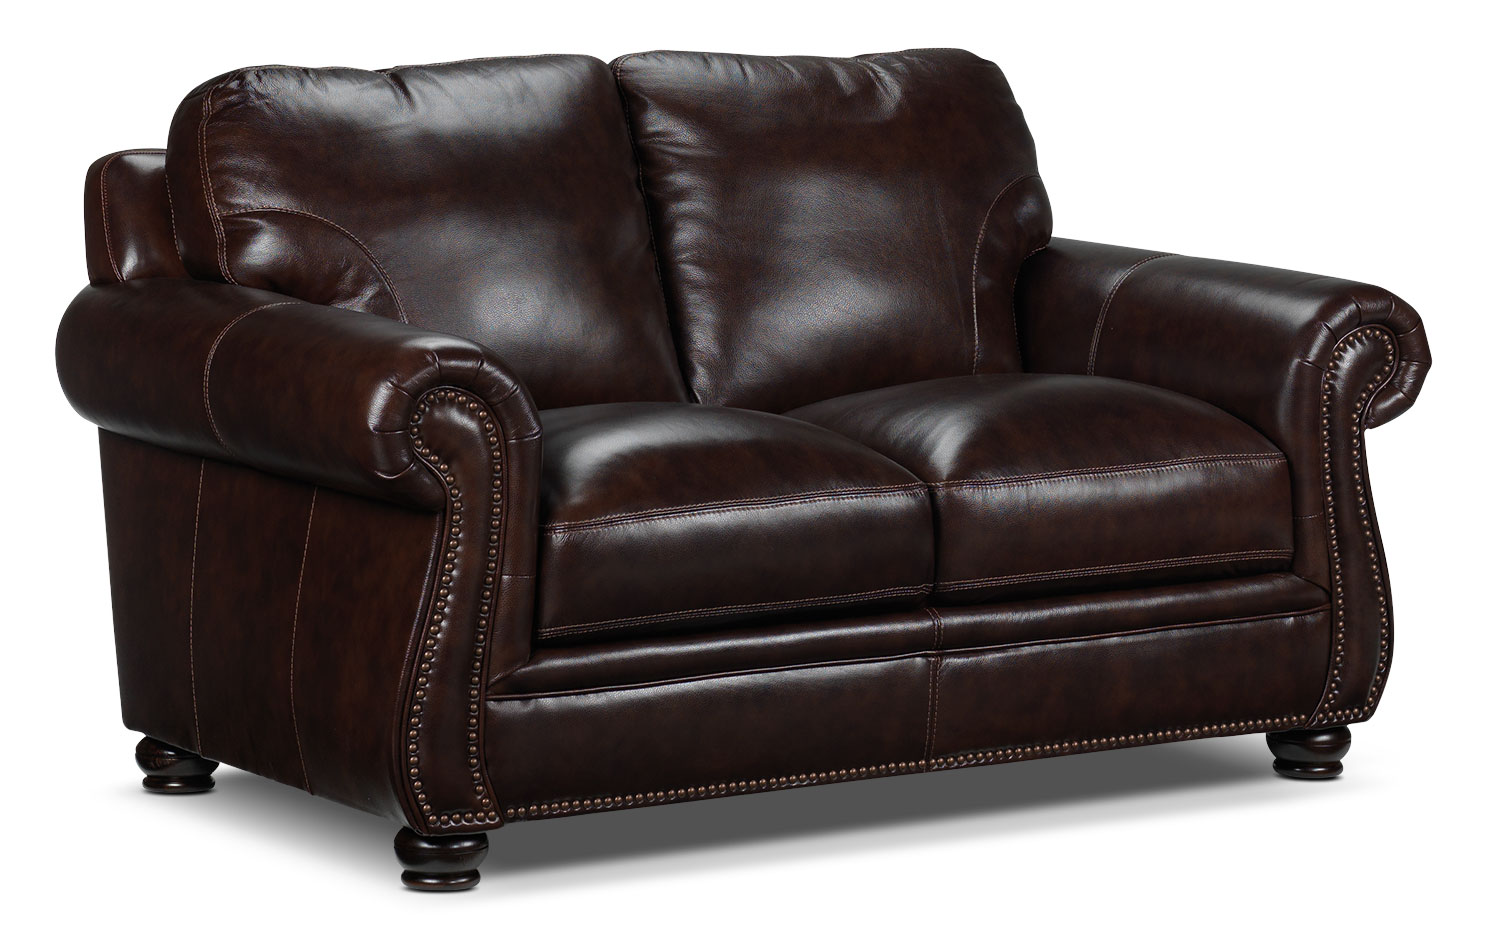 Rafferty Loveseat - Walnut